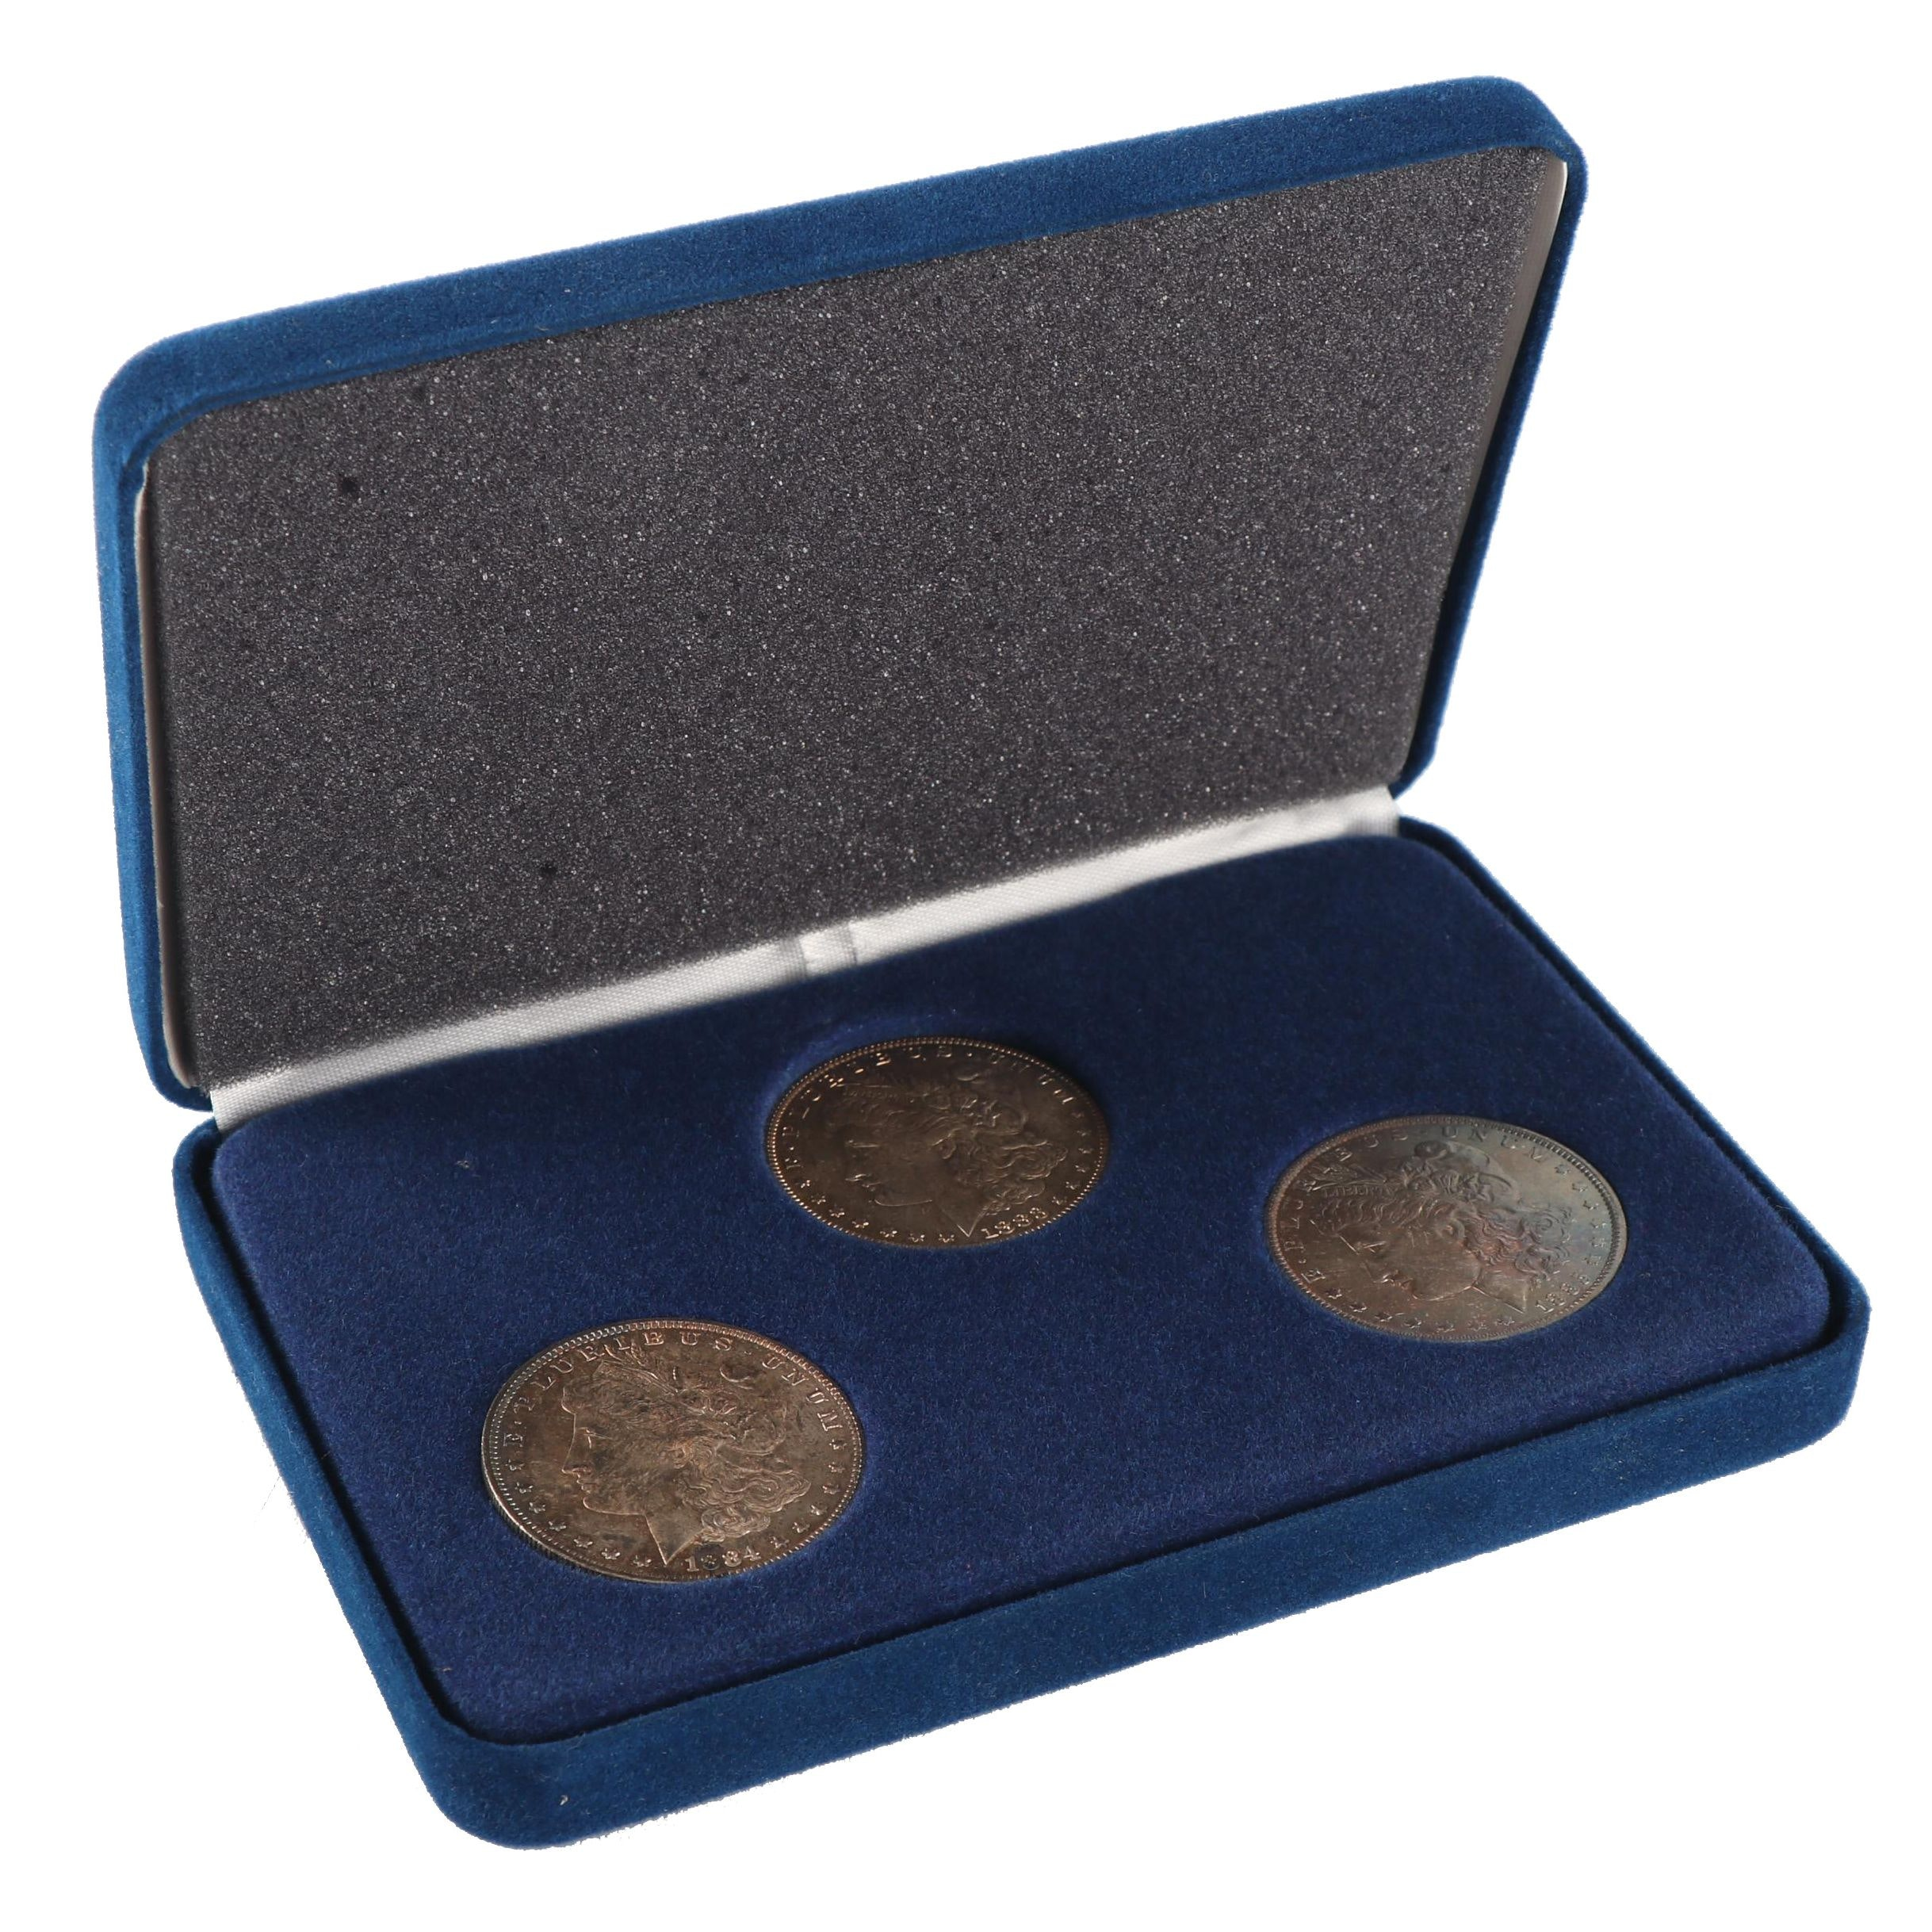 American Historical Society Set of Three New Orleans Morgan Silver Dollars